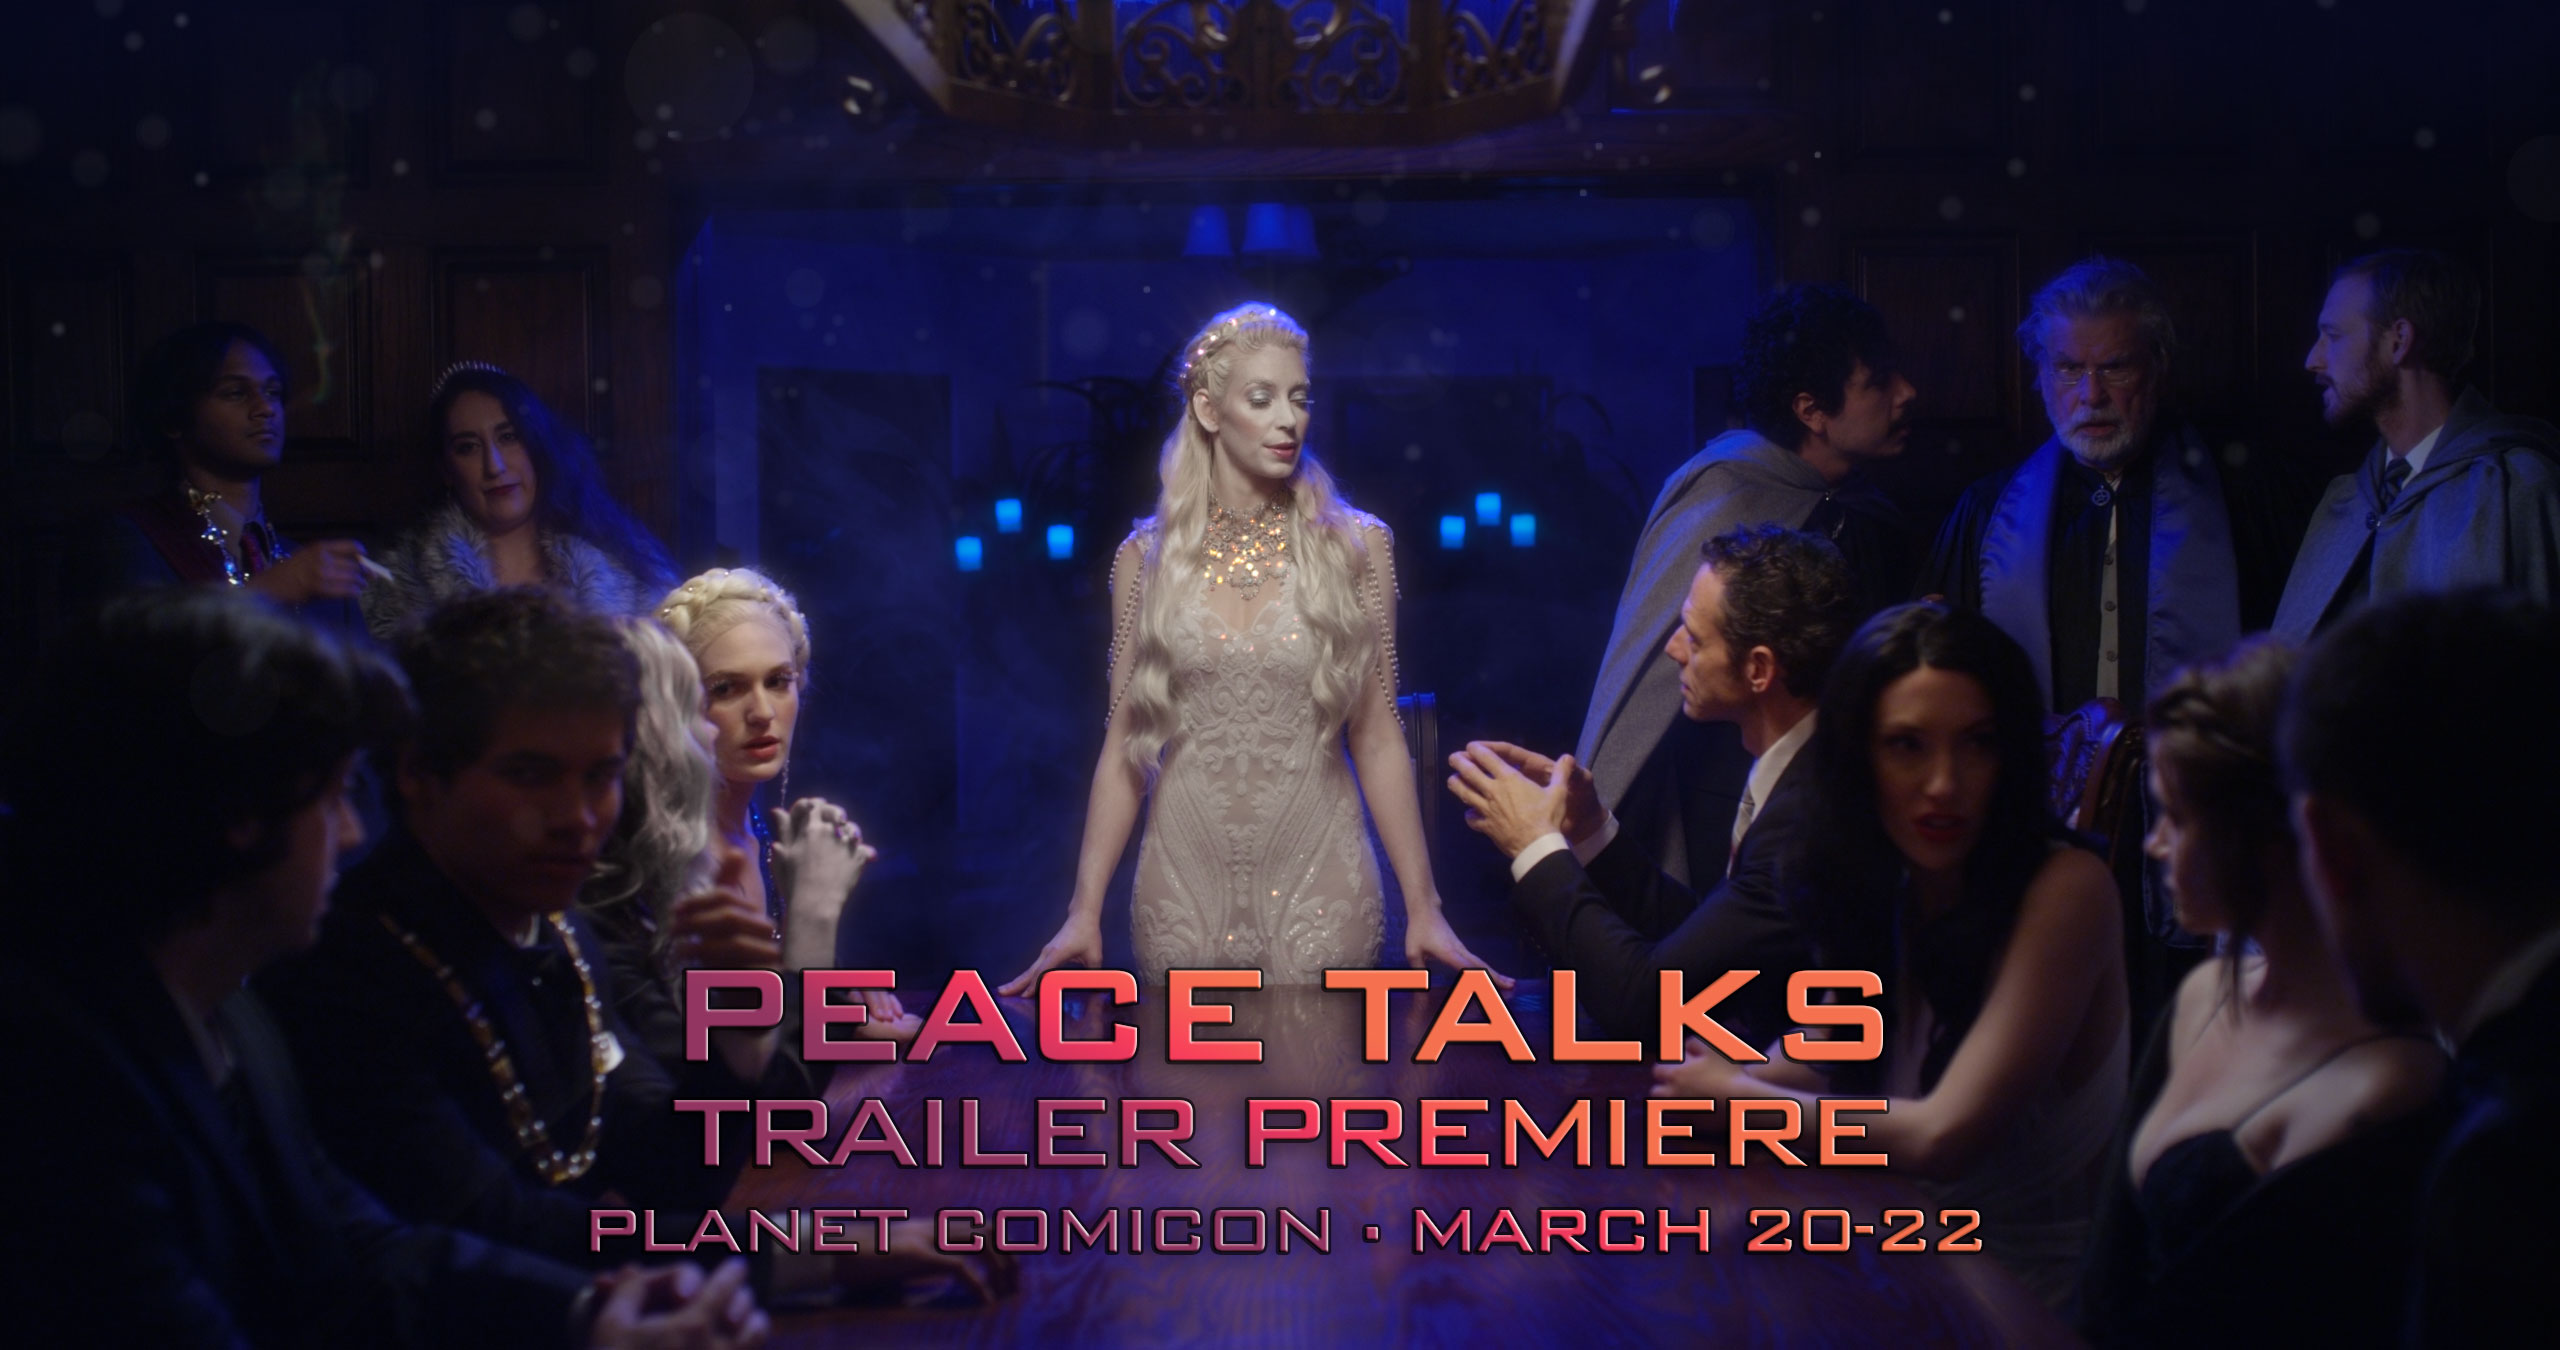 Peace Talks Trailer Premiere March 20-22 at Planet Comicon in Kansas City